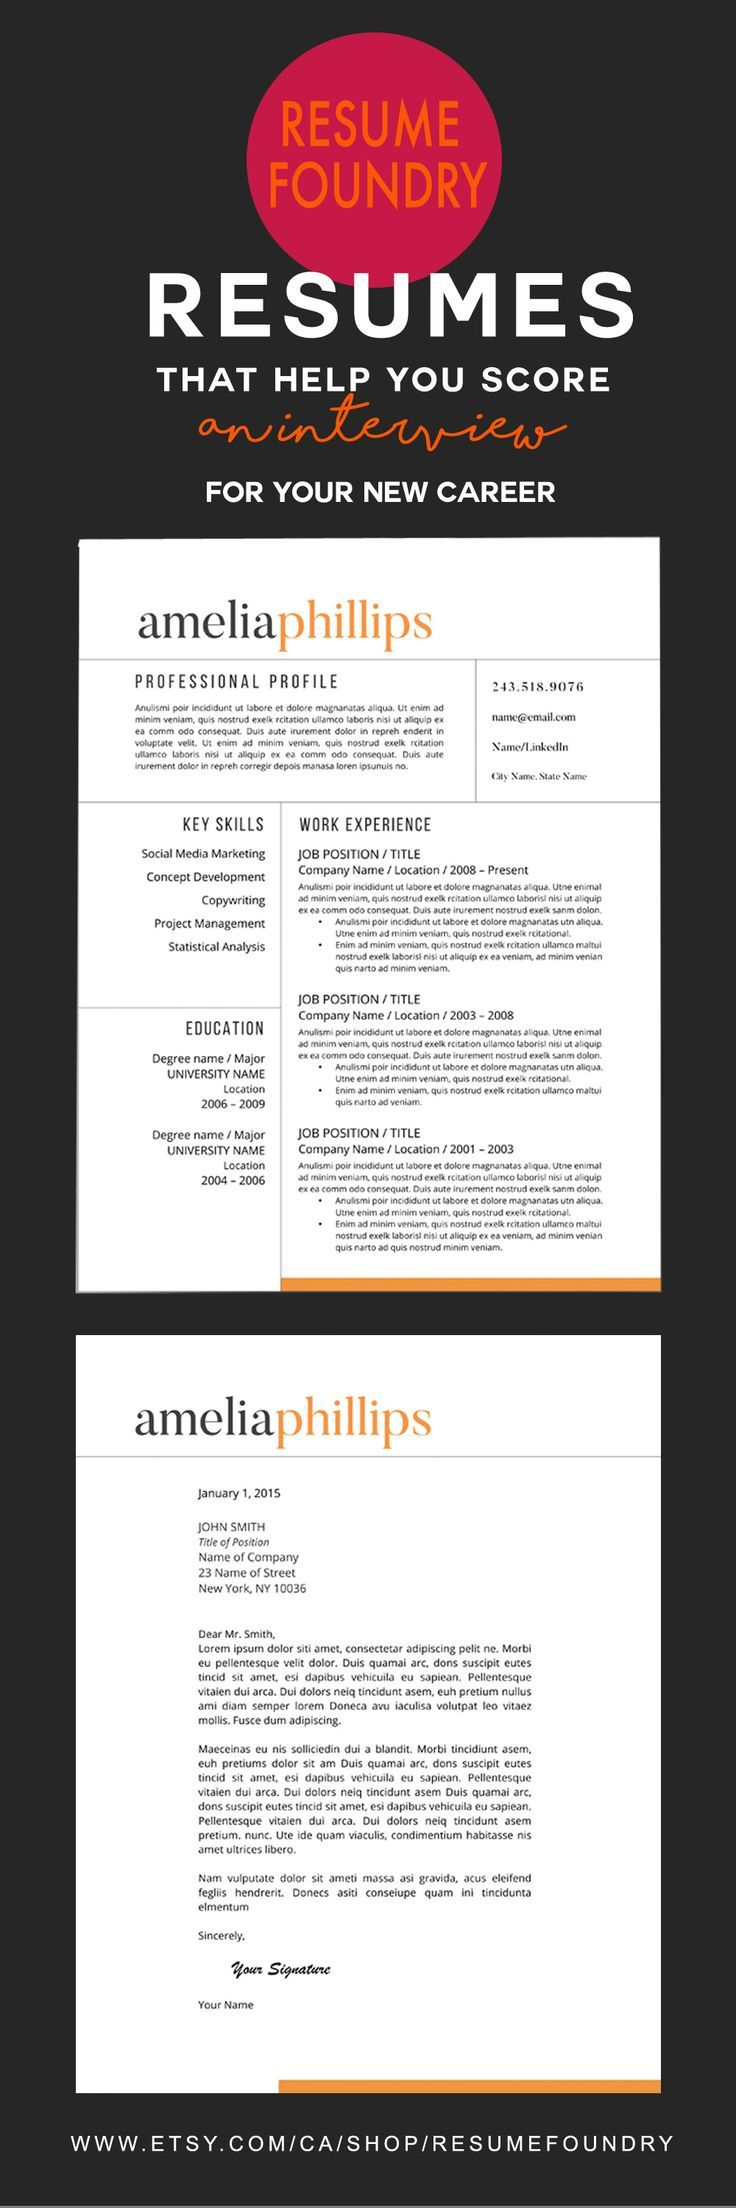 Cute Double Major Resume Template Contemporary Entry Level Resume